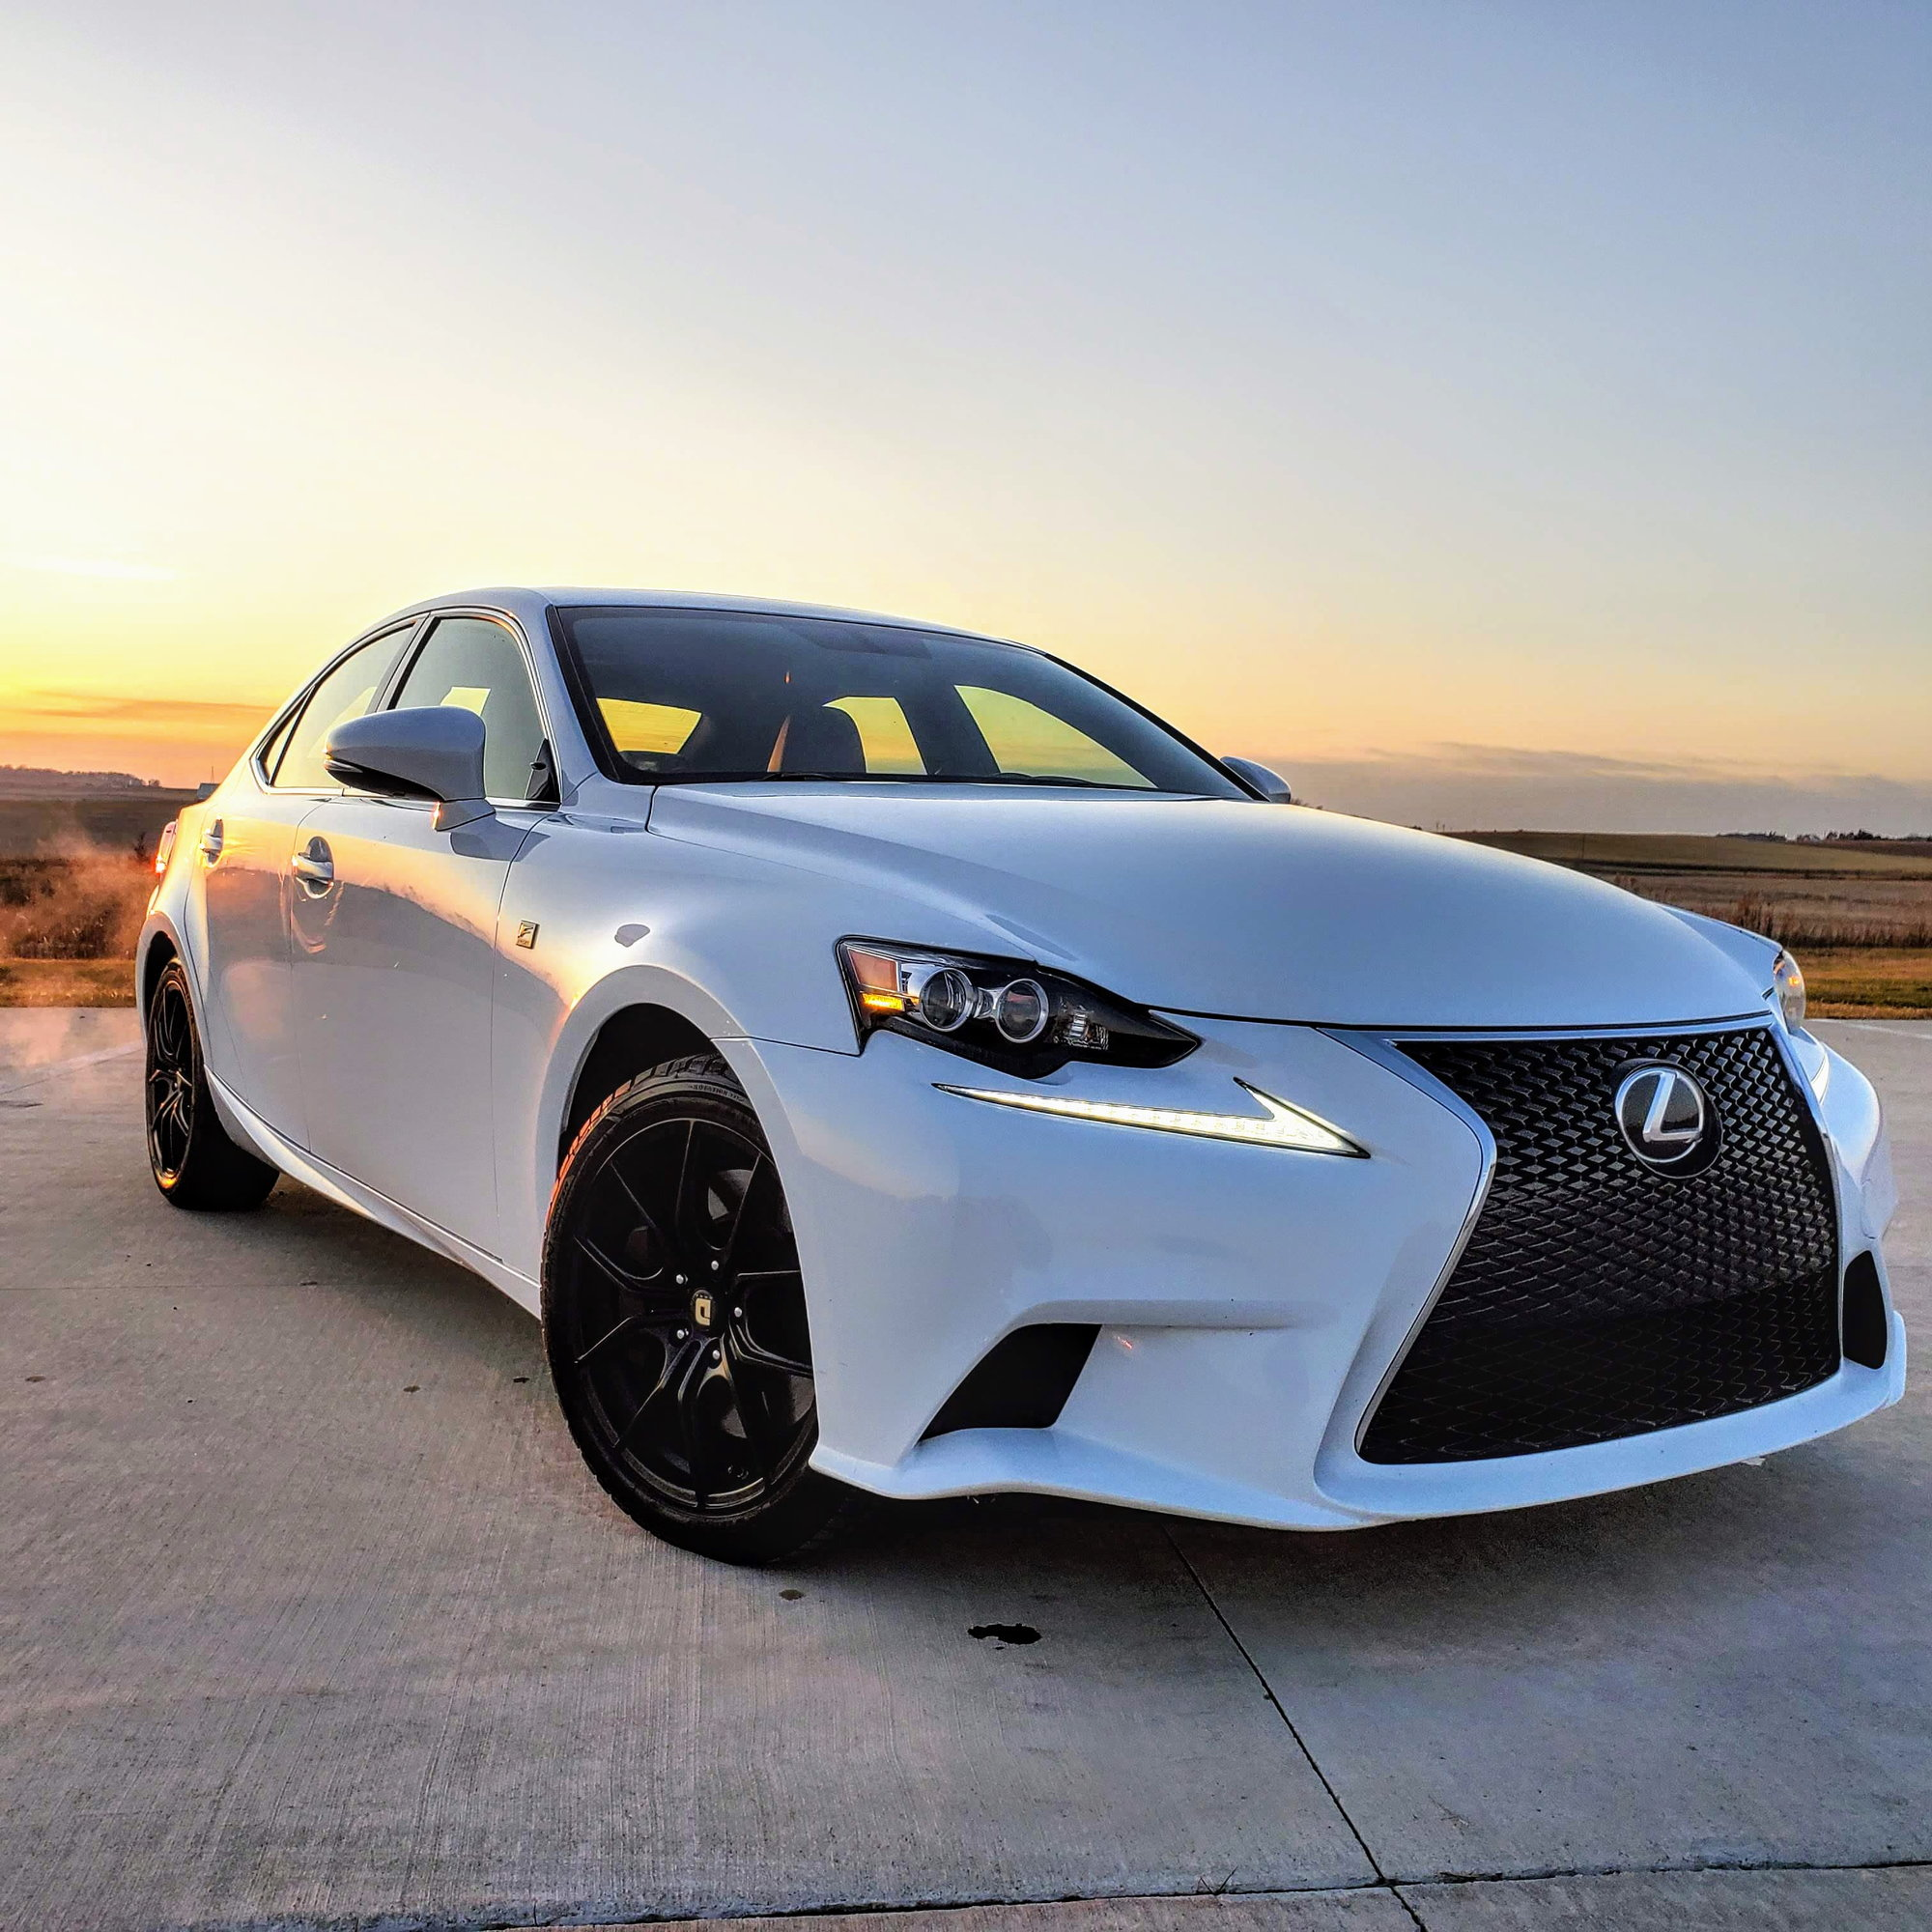 Lexus Is 350 Sport: 2014 Lexus IS 350 F Sport AWD